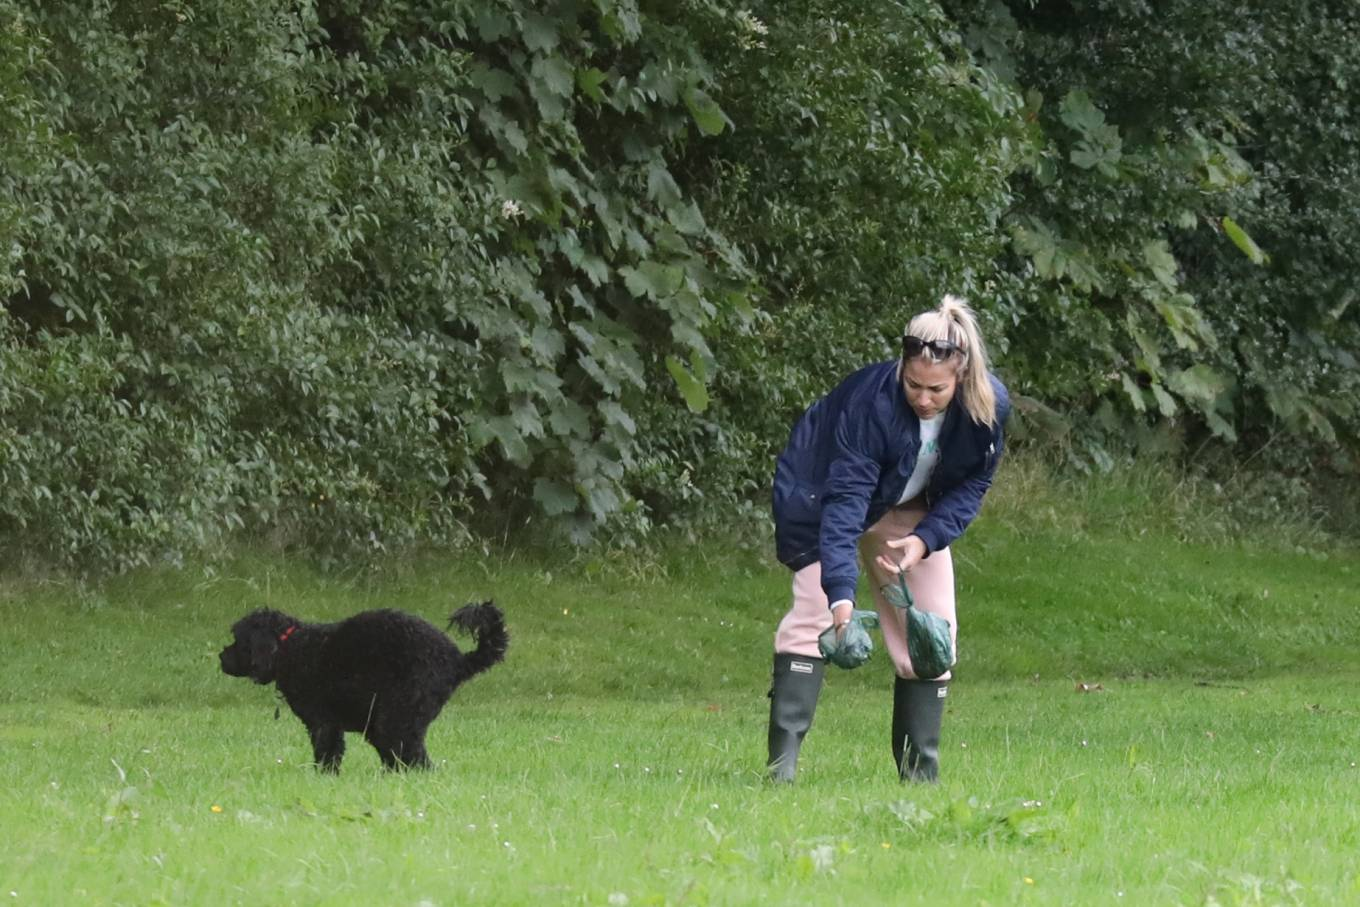 Gemma Atkinson 2020 : Gemma Atkinson – Out for a morning dog walk in Manchester-09